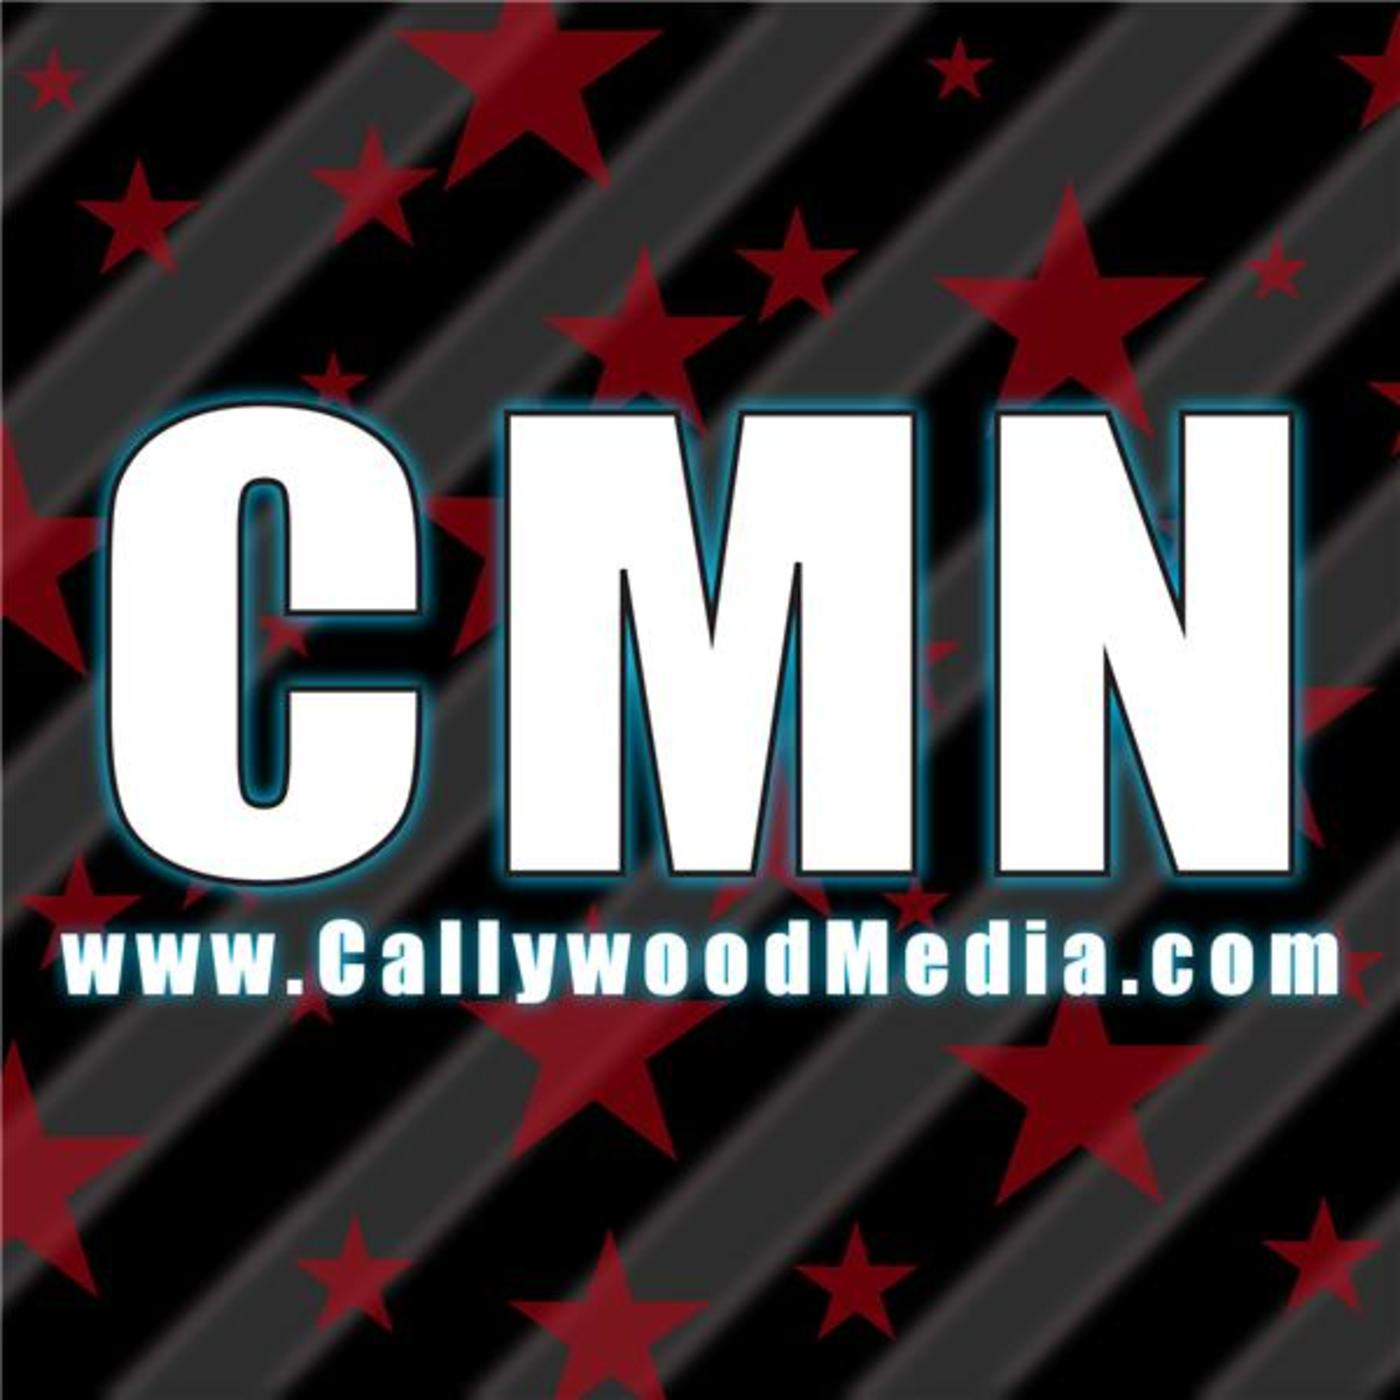 Callywood Media Network